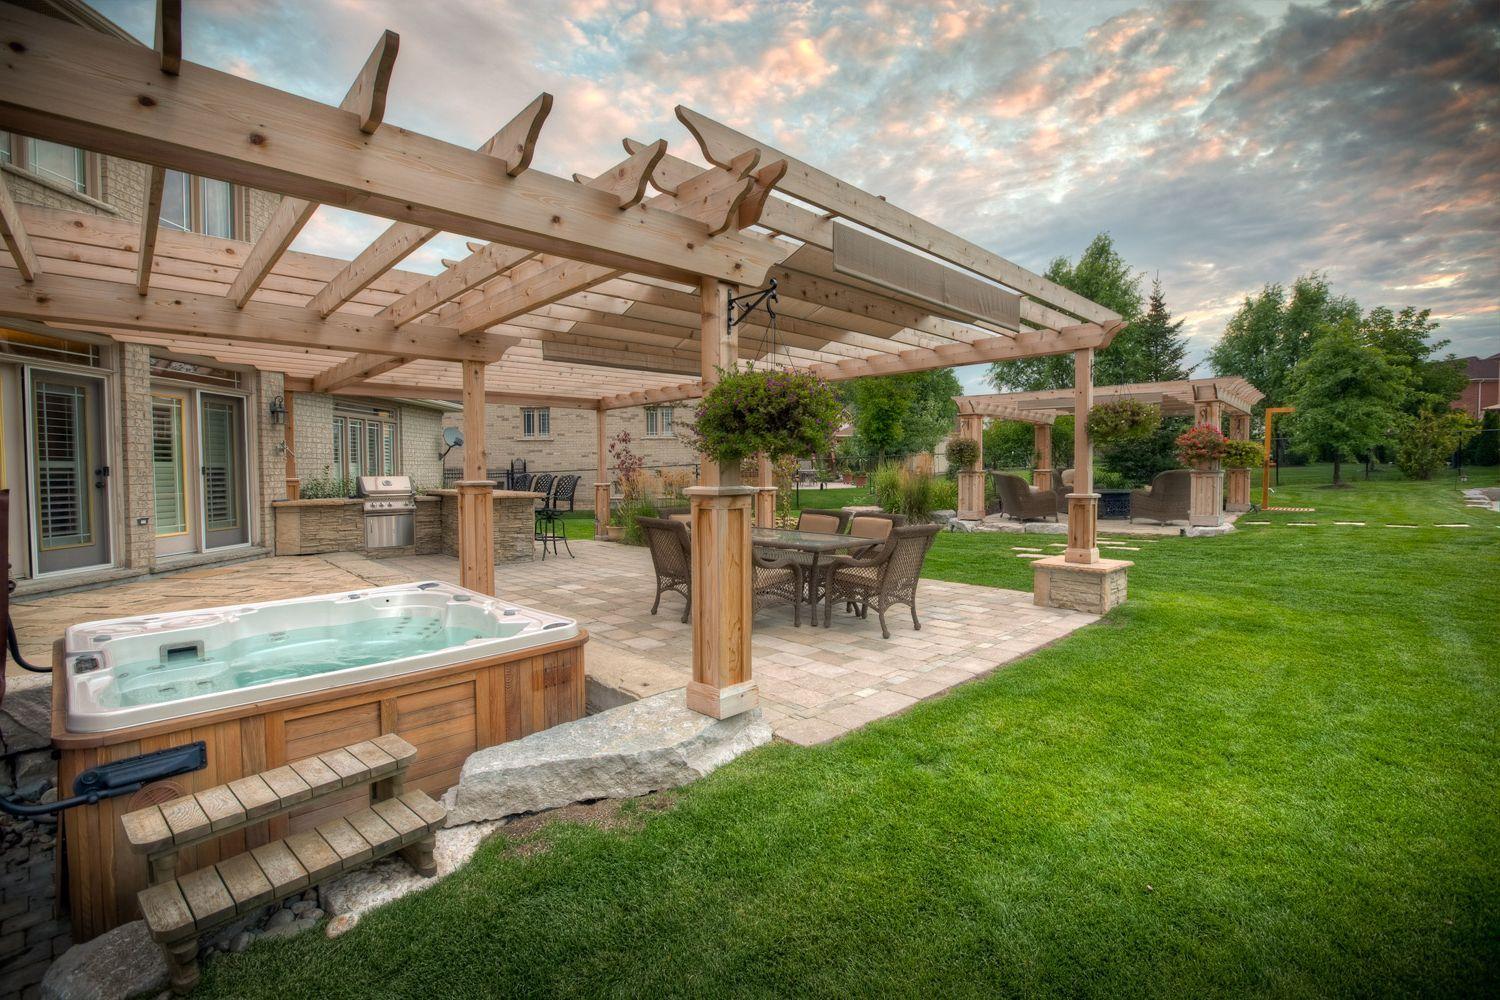 Deck Backyard Ideas 15 before and after backyard makeovers cedar deck and brick patios Outdoor Backyard Deck Designs With Hot Tub Ideas Deck With Pergola And Hot Tub